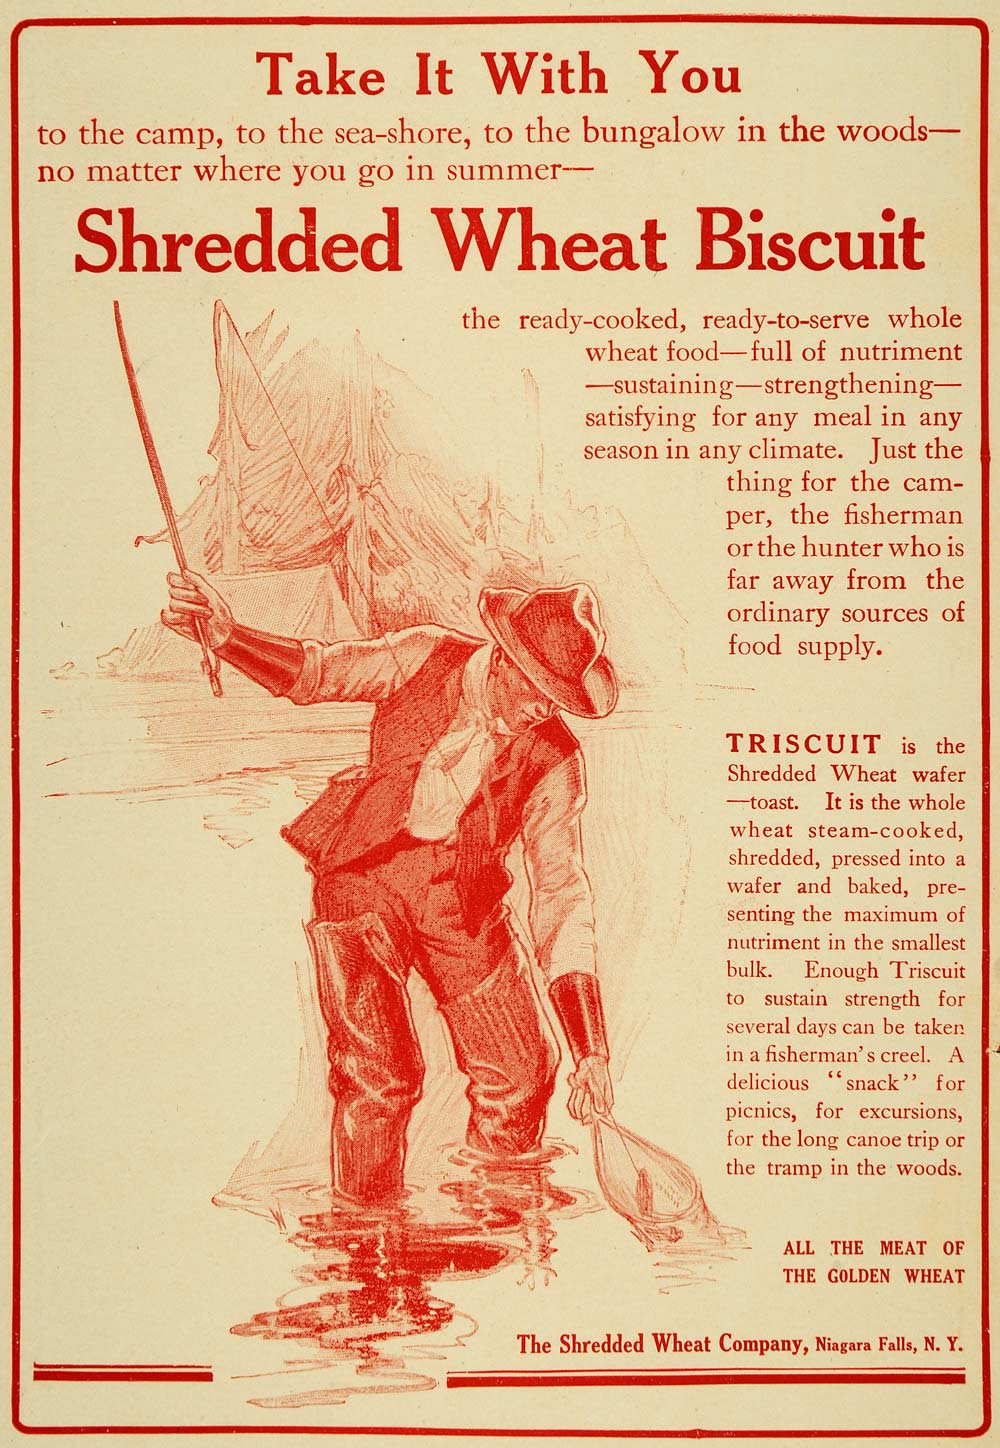 1910 Ad Shredded Wheat Co. Biscuit Triscuit Fishing - ORIGINAL ADVERTISING TIN4